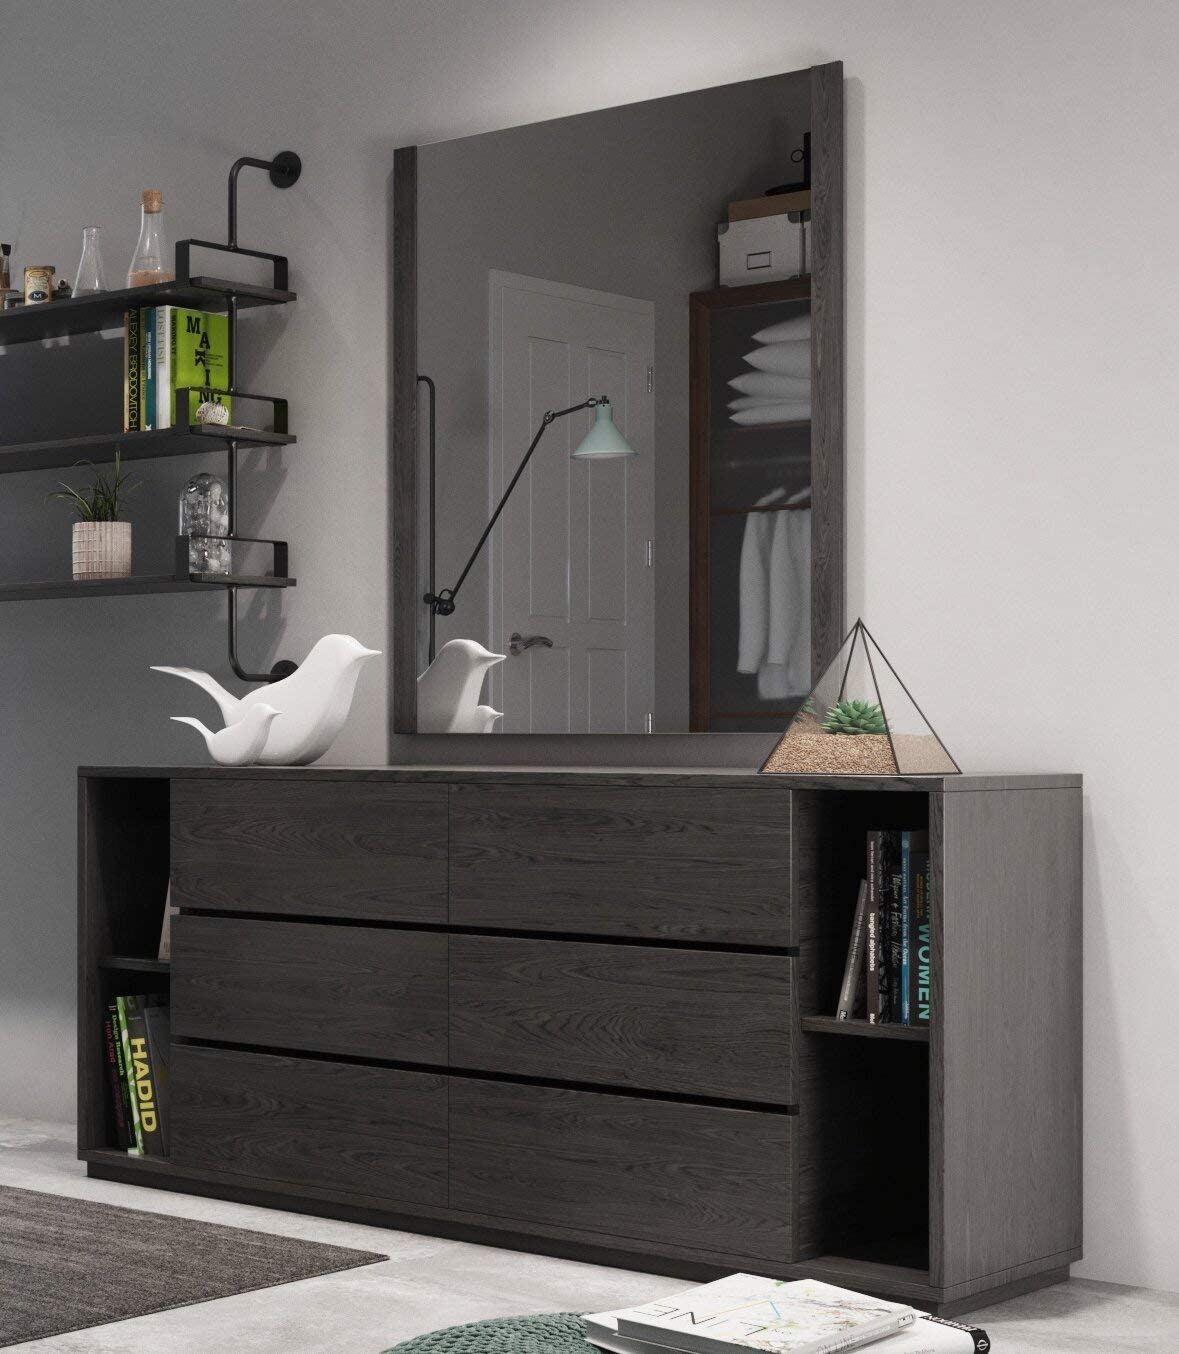 6 Drawers Double Dresser With Mirror Kitchen Dining